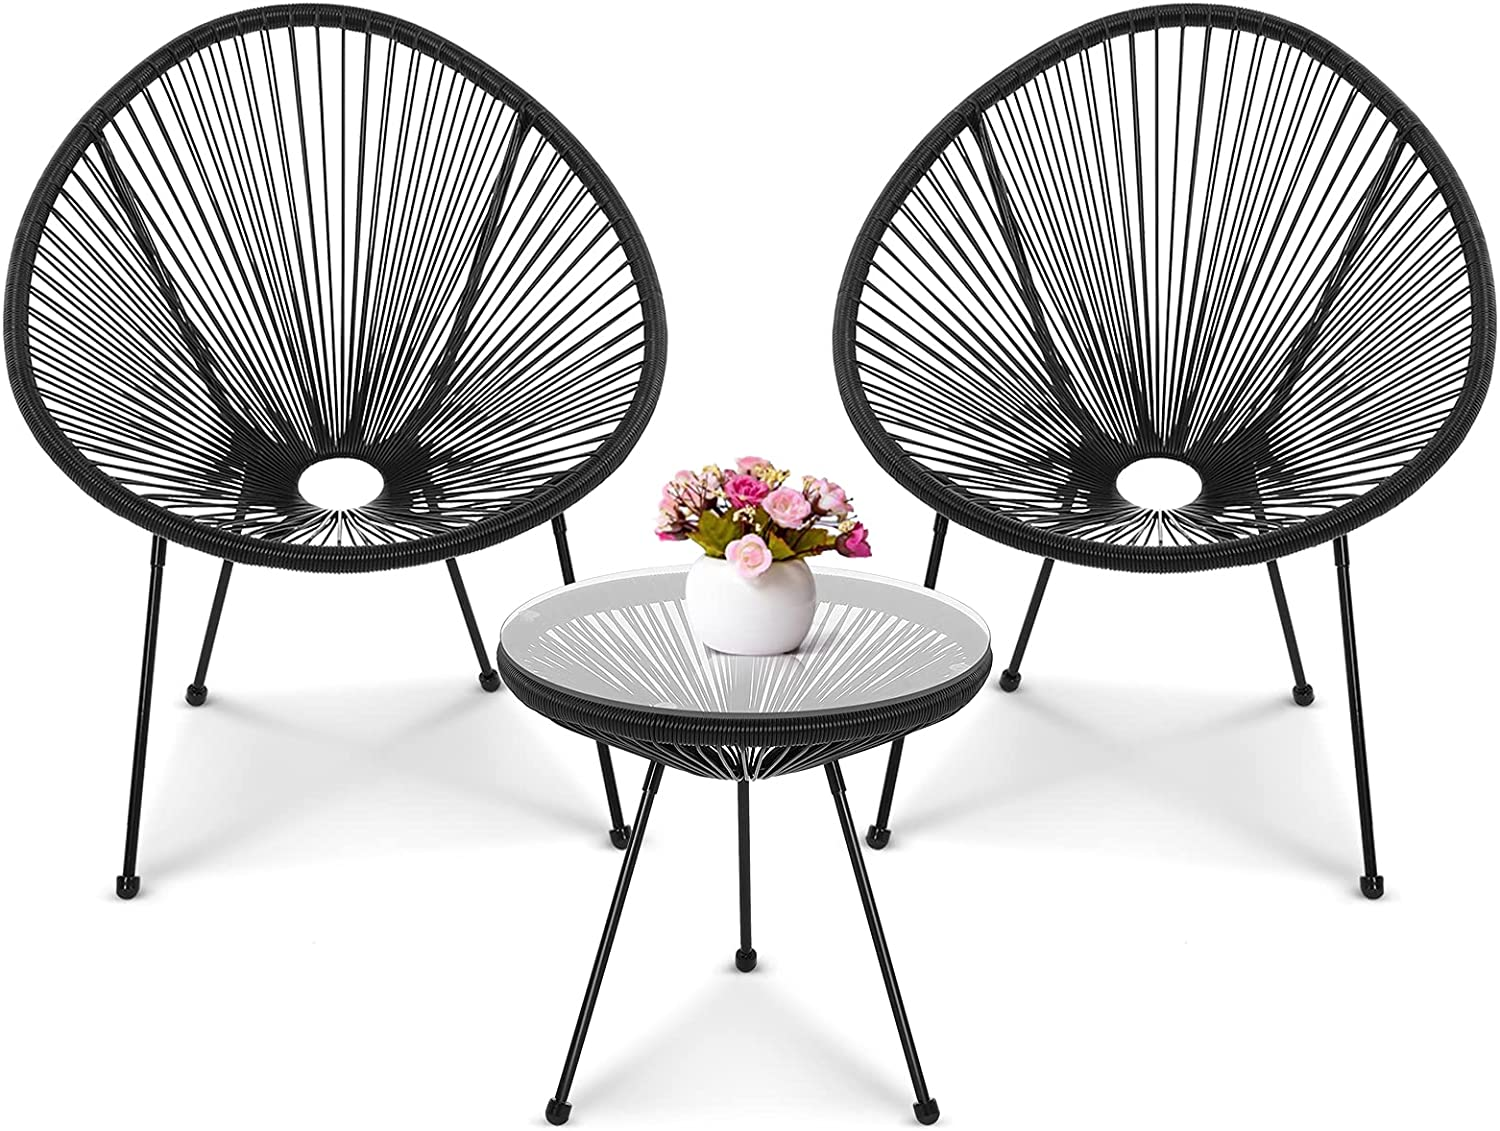 New color Patio Acapulco Lounge Chairs 3 Co Max 68% OFF Piece STOOG Outdoor Furniture